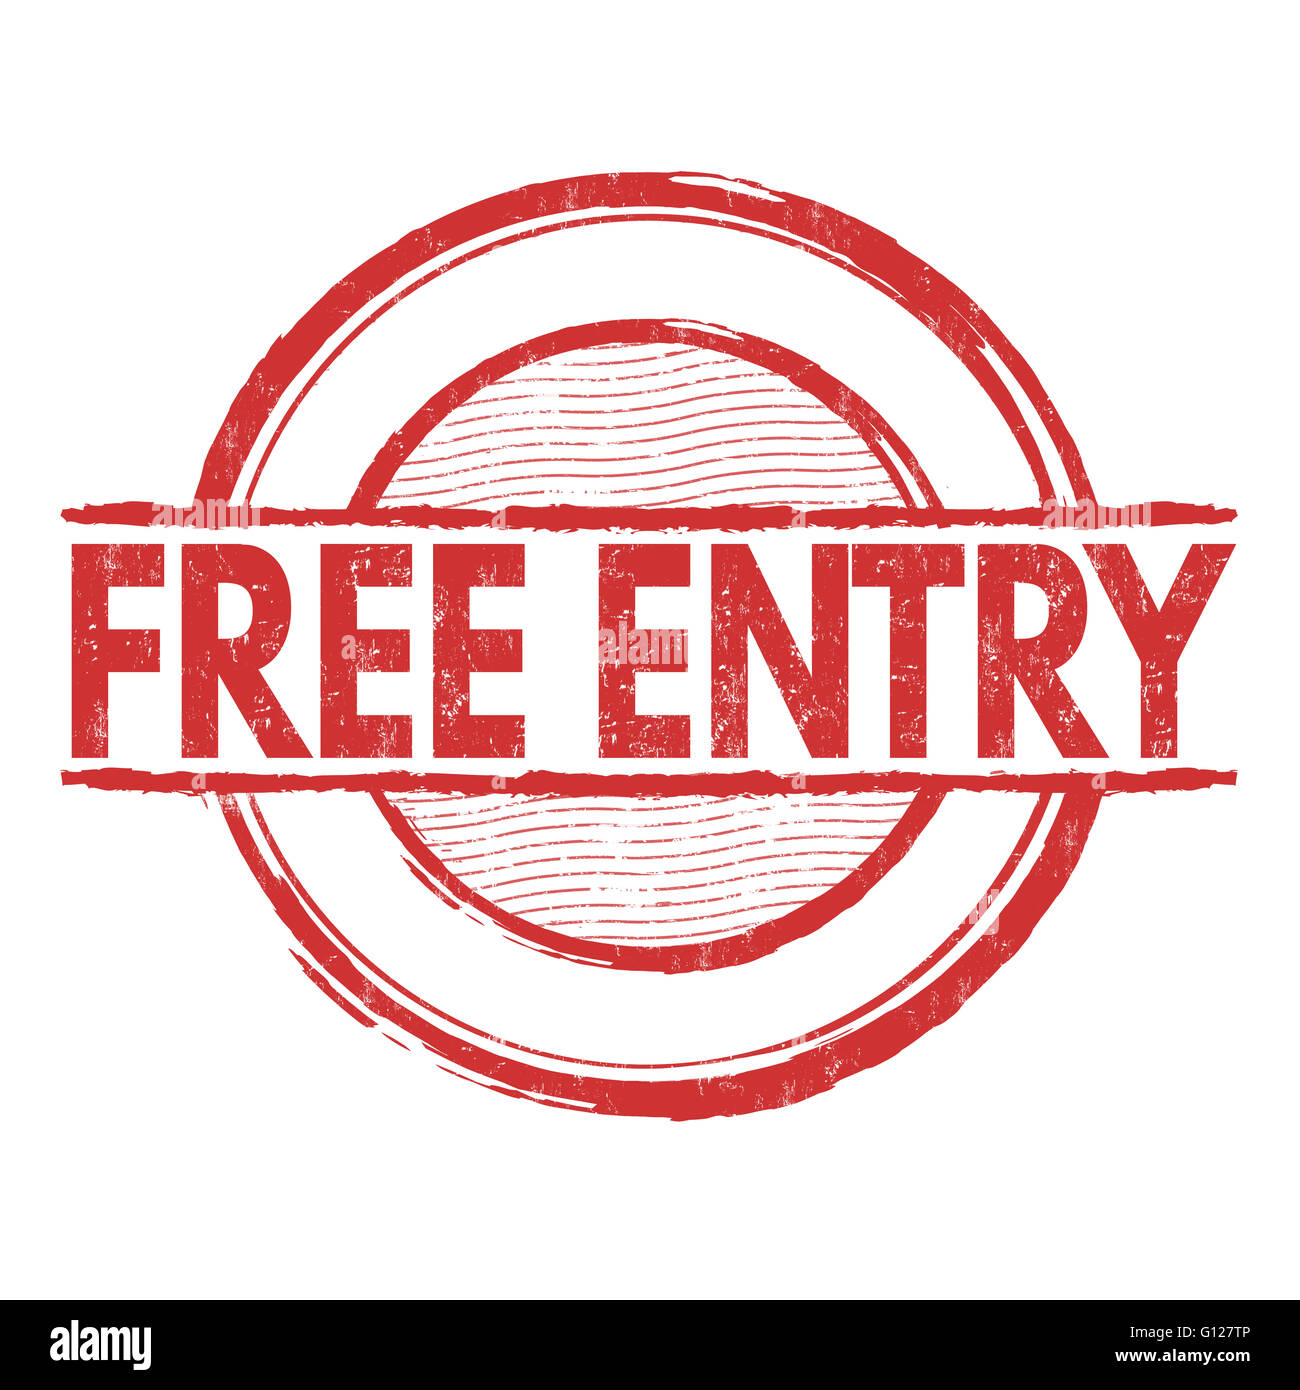 Free entry grunge rubber stamp on white background, vector illustration - Stock Image